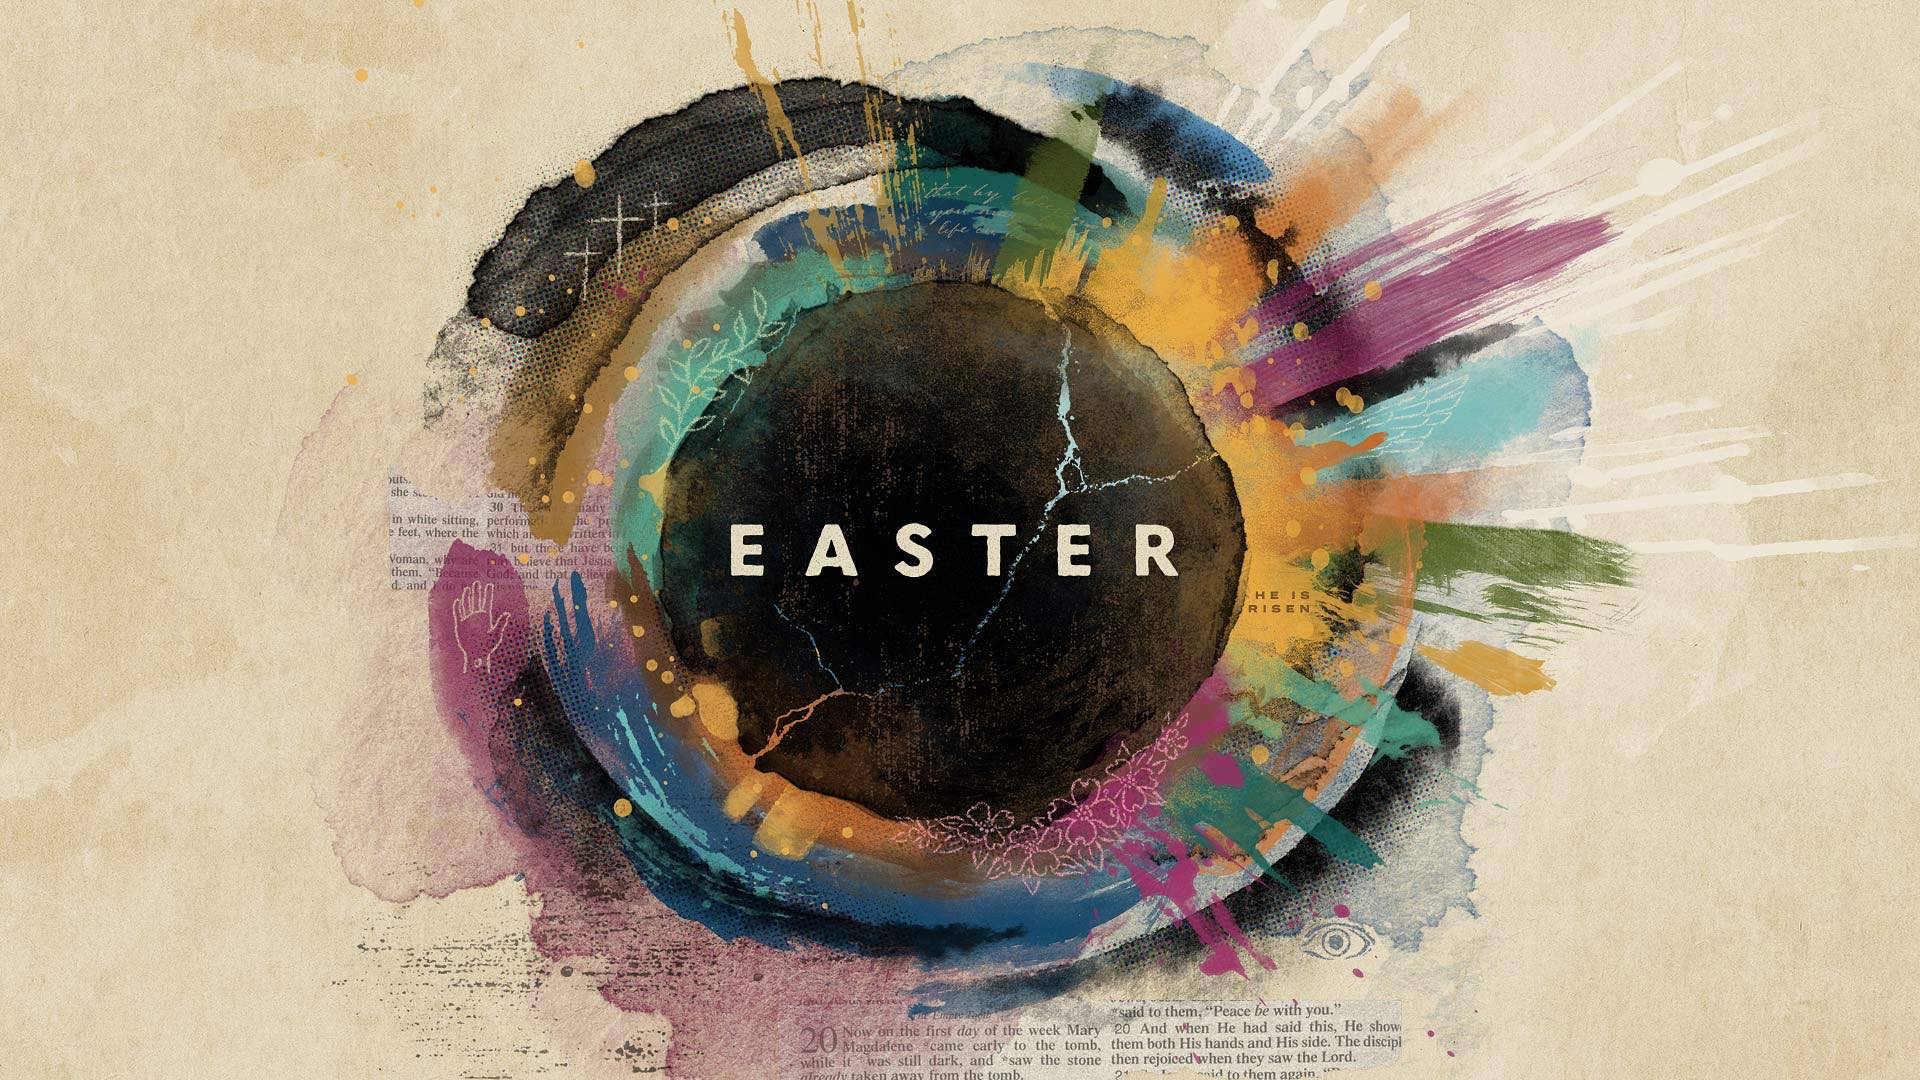 Easter: Invitation to Believe